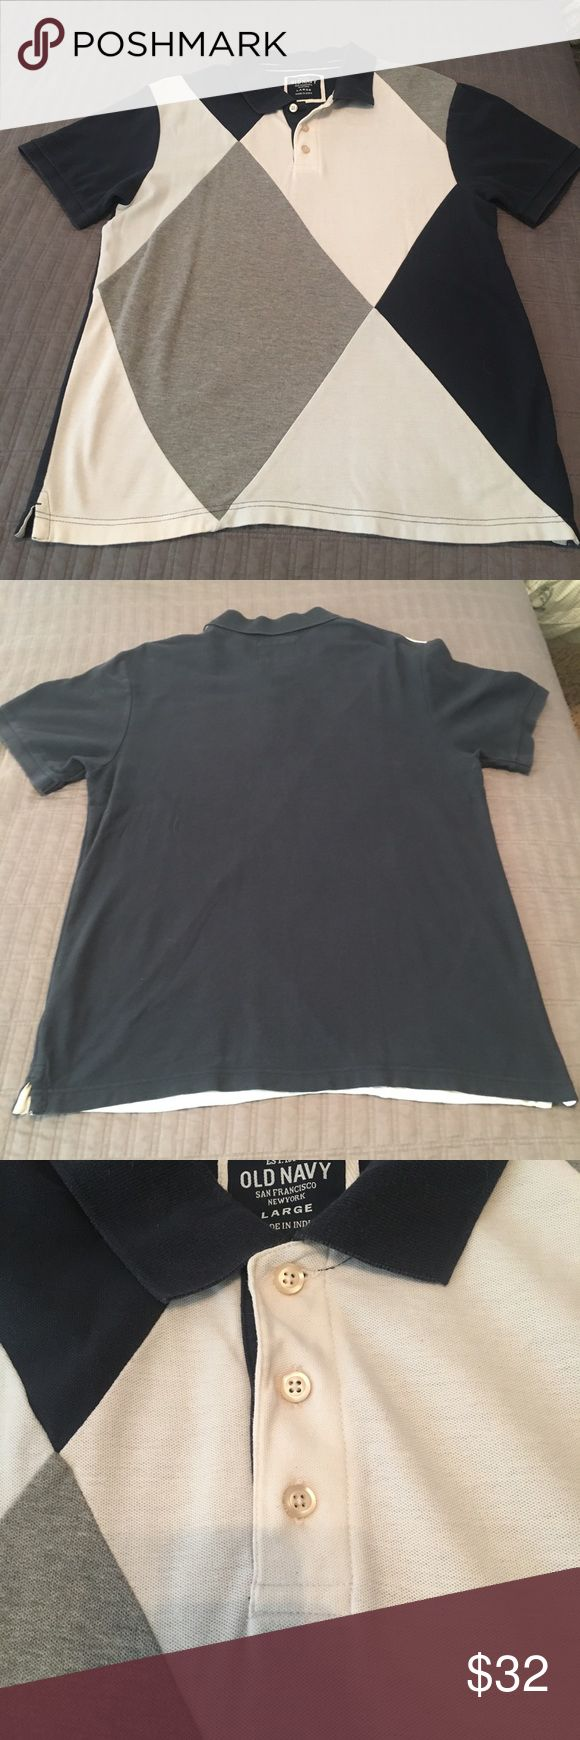 👟SALE👟Old Navy Men's Polo Shirt Argyle style short sleeve men's shirt, it has 3 buttons on the front and 4 different colors on the front including navy, gray, white and light blue. It has been worn a couple times but is still in good used condition. It is a size men's large Old Navy Shirts Polos